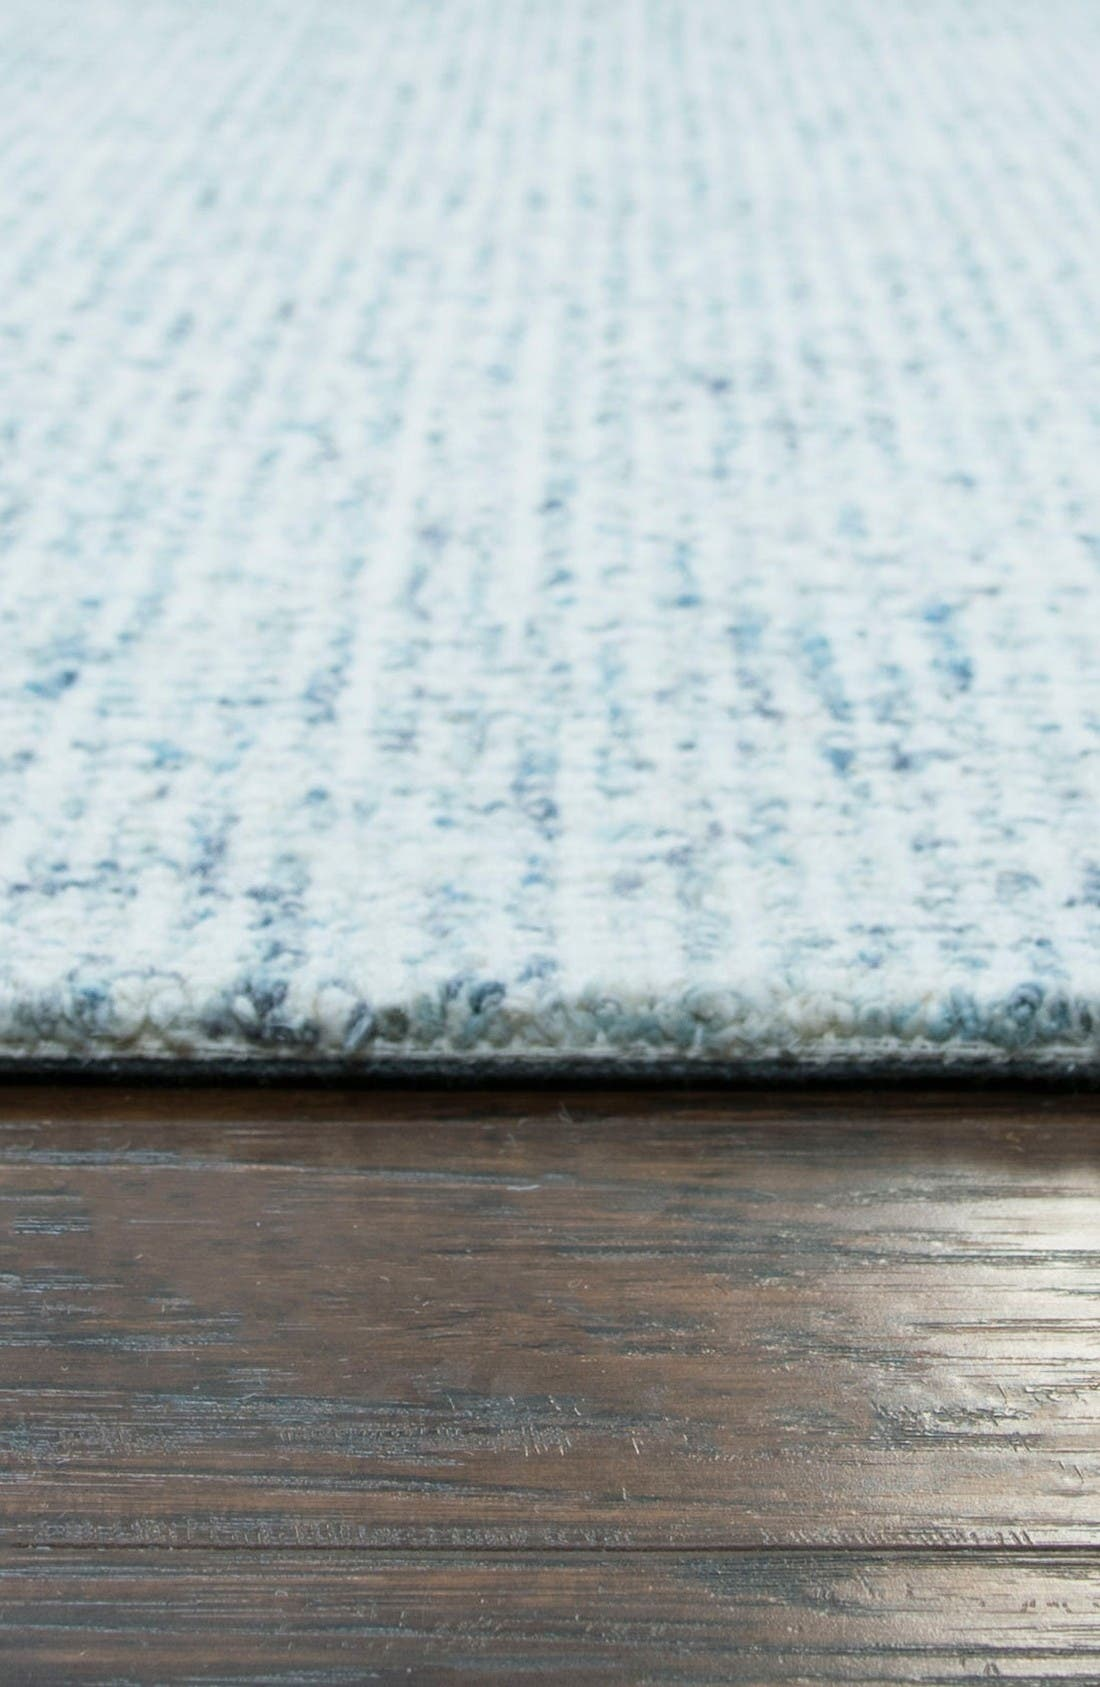 Bramble Hand Tufted Wool Area Rug,                             Alternate thumbnail 3, color,                             Blue